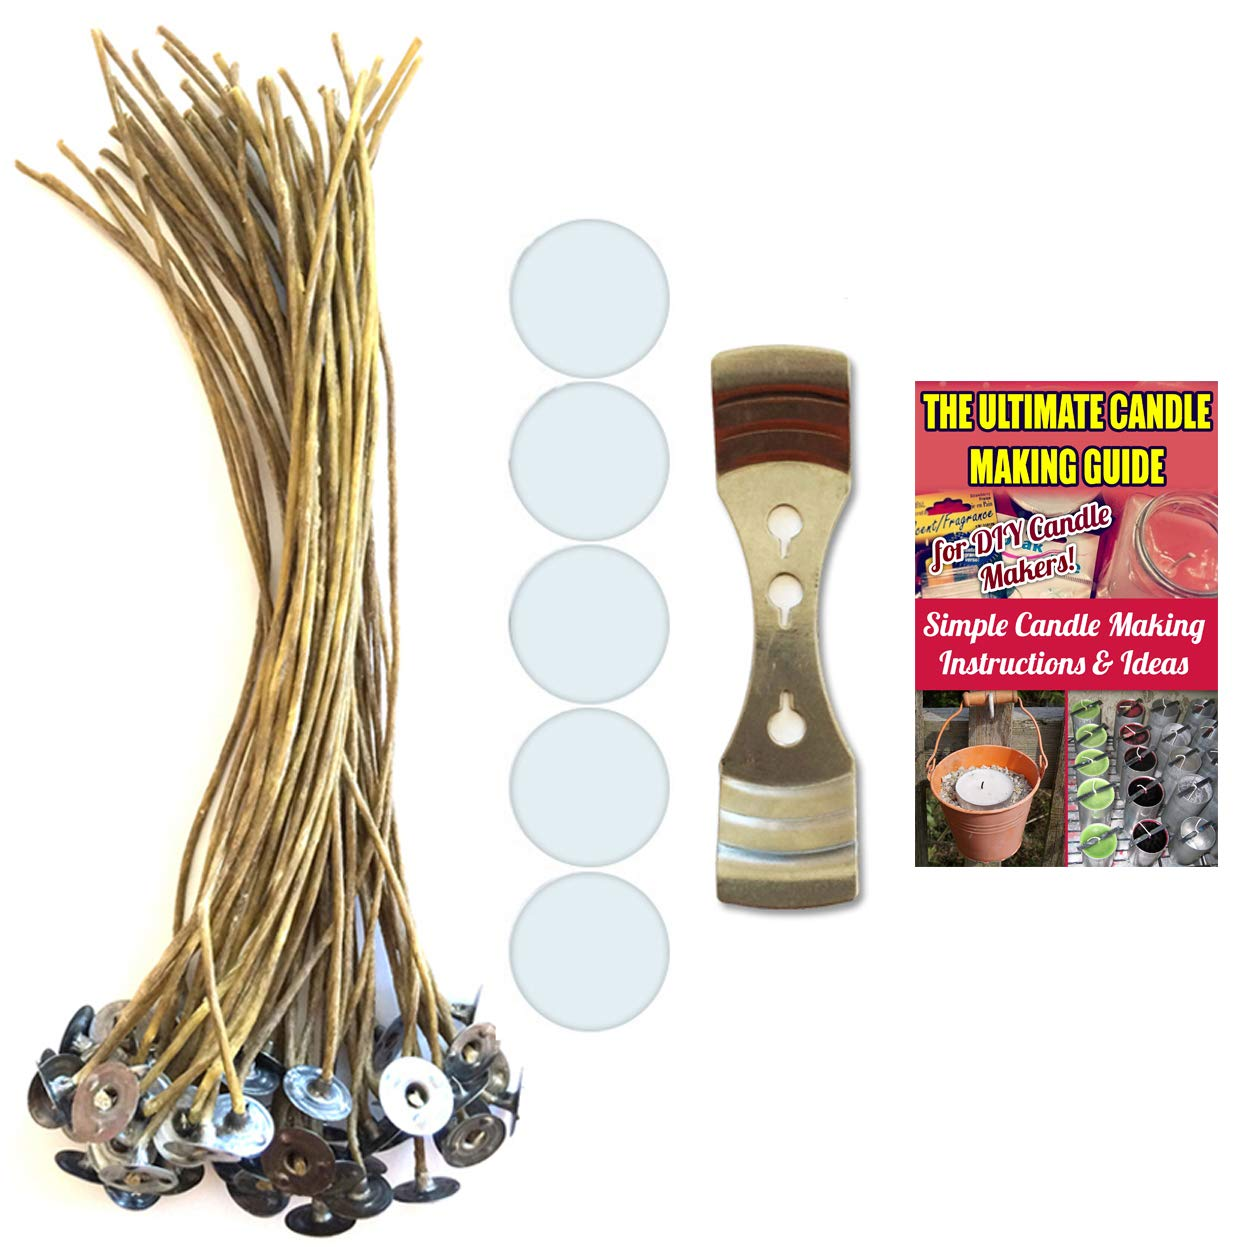 CozYours 8 inch Beeswax Hemp Candle Wicks with Candle Wick Stickers & Candle Wick Centering Device,50/50/1 pcs;Low Smoke&Natural;Candle Wicks for Candle Making.Candle DIY Hacks E-Book Included! T1824